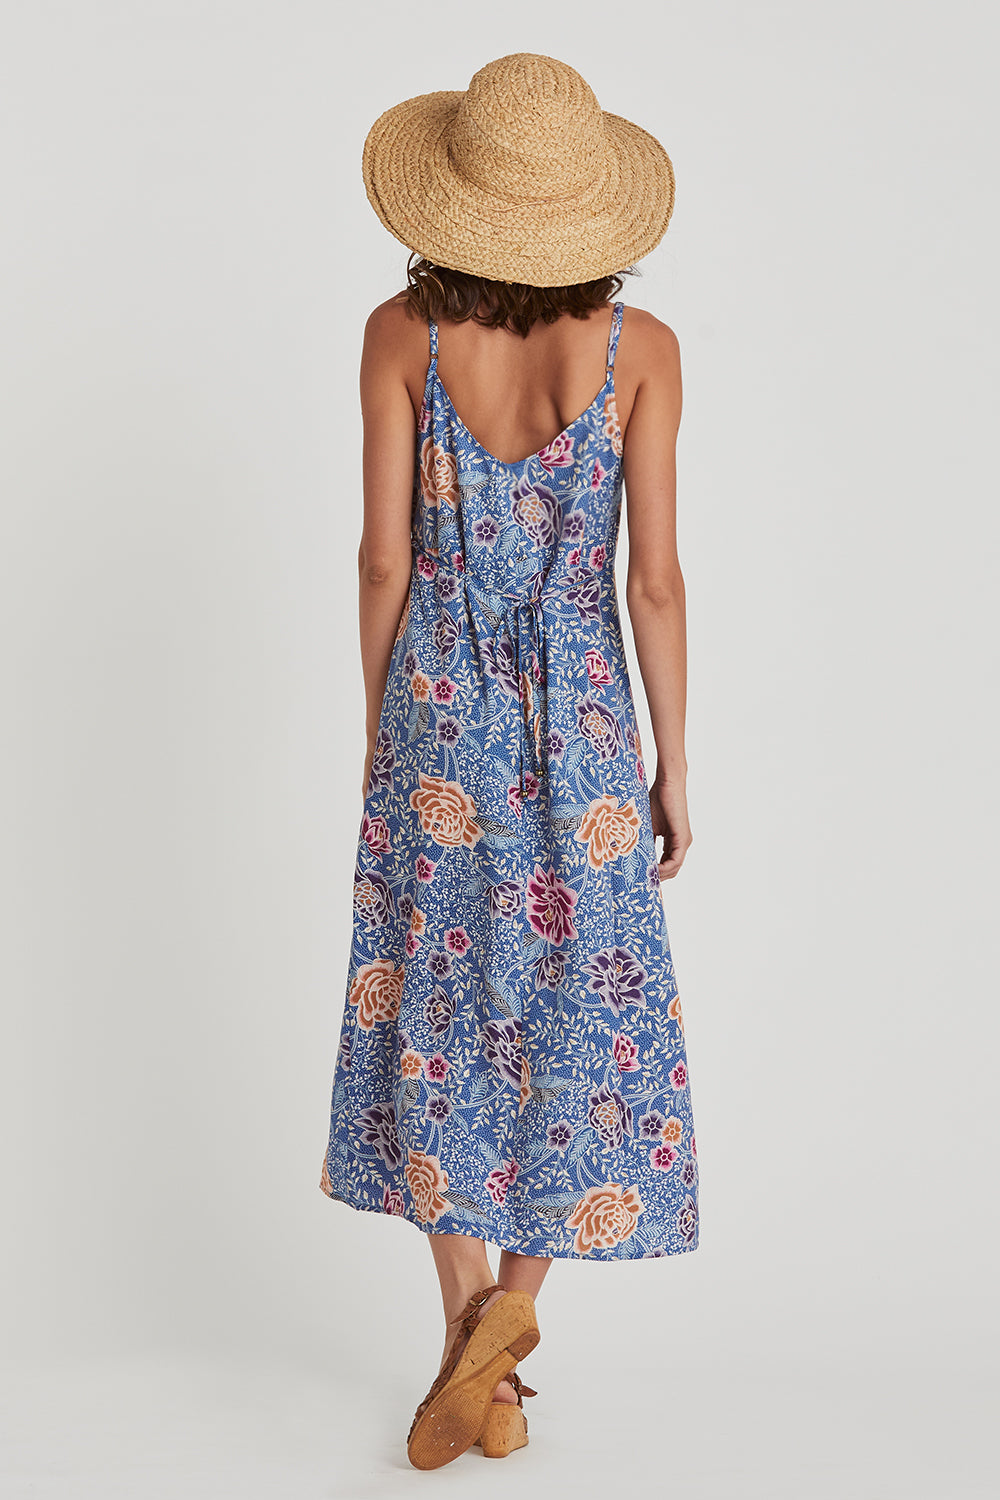 Leilani Slip Dress in Floral Reef